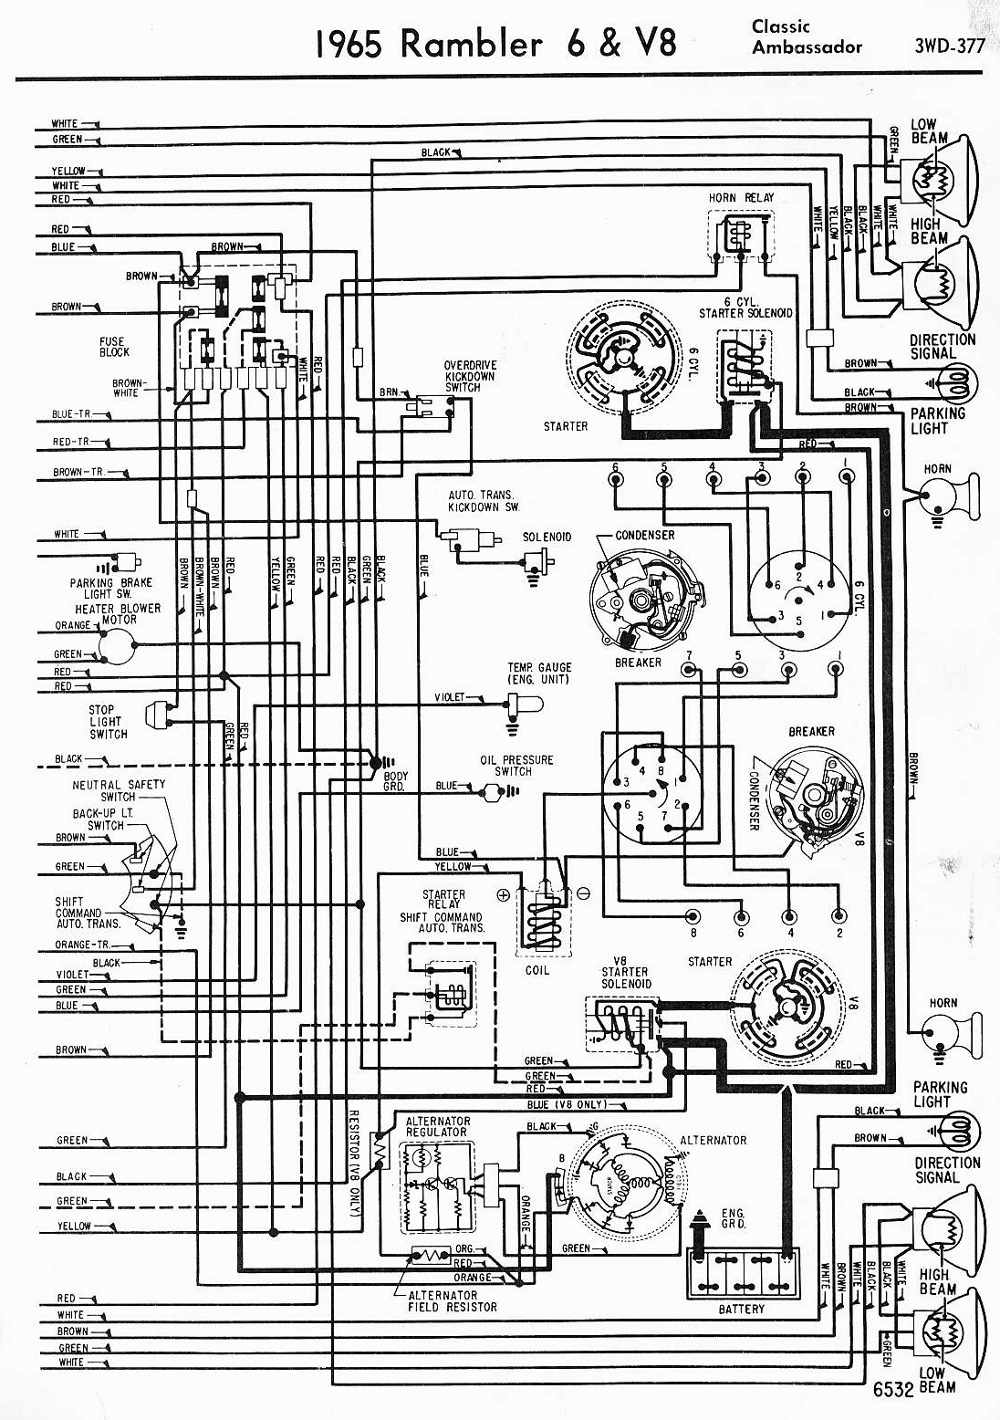 wiring diagrams of 1965 AMC rambler 6 and v8 classic and ambassador part 2?td1484904655 ford transit wiring diagram download efcaviation com ford transit electrical diagram wiring schematic at soozxer.org